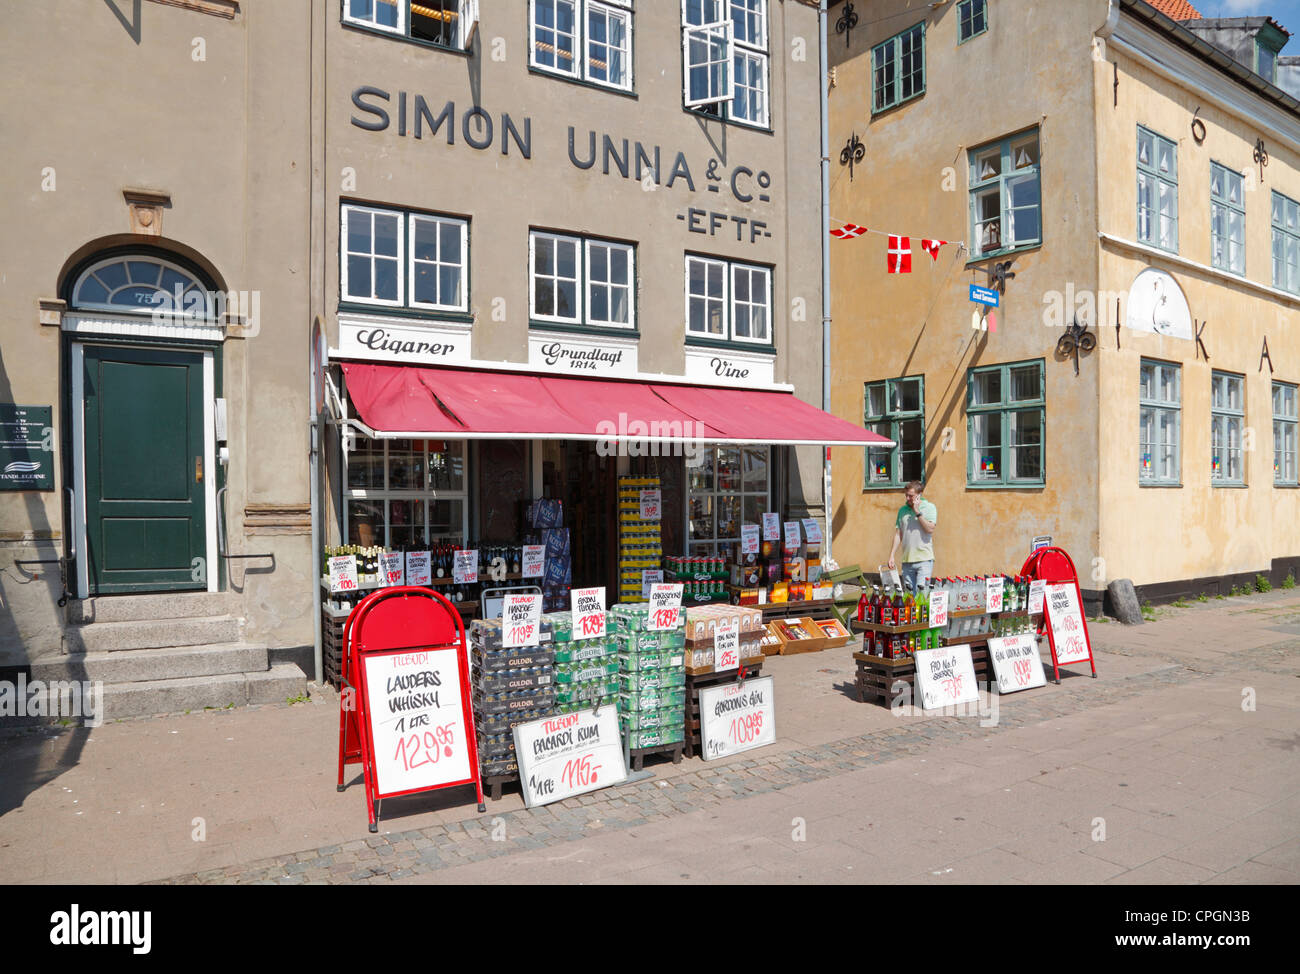 Beer, wine, and booze shop in historic town Elsinore, Denmark. Citizens from south Sweden buy alcoholic beverages - Stock Image